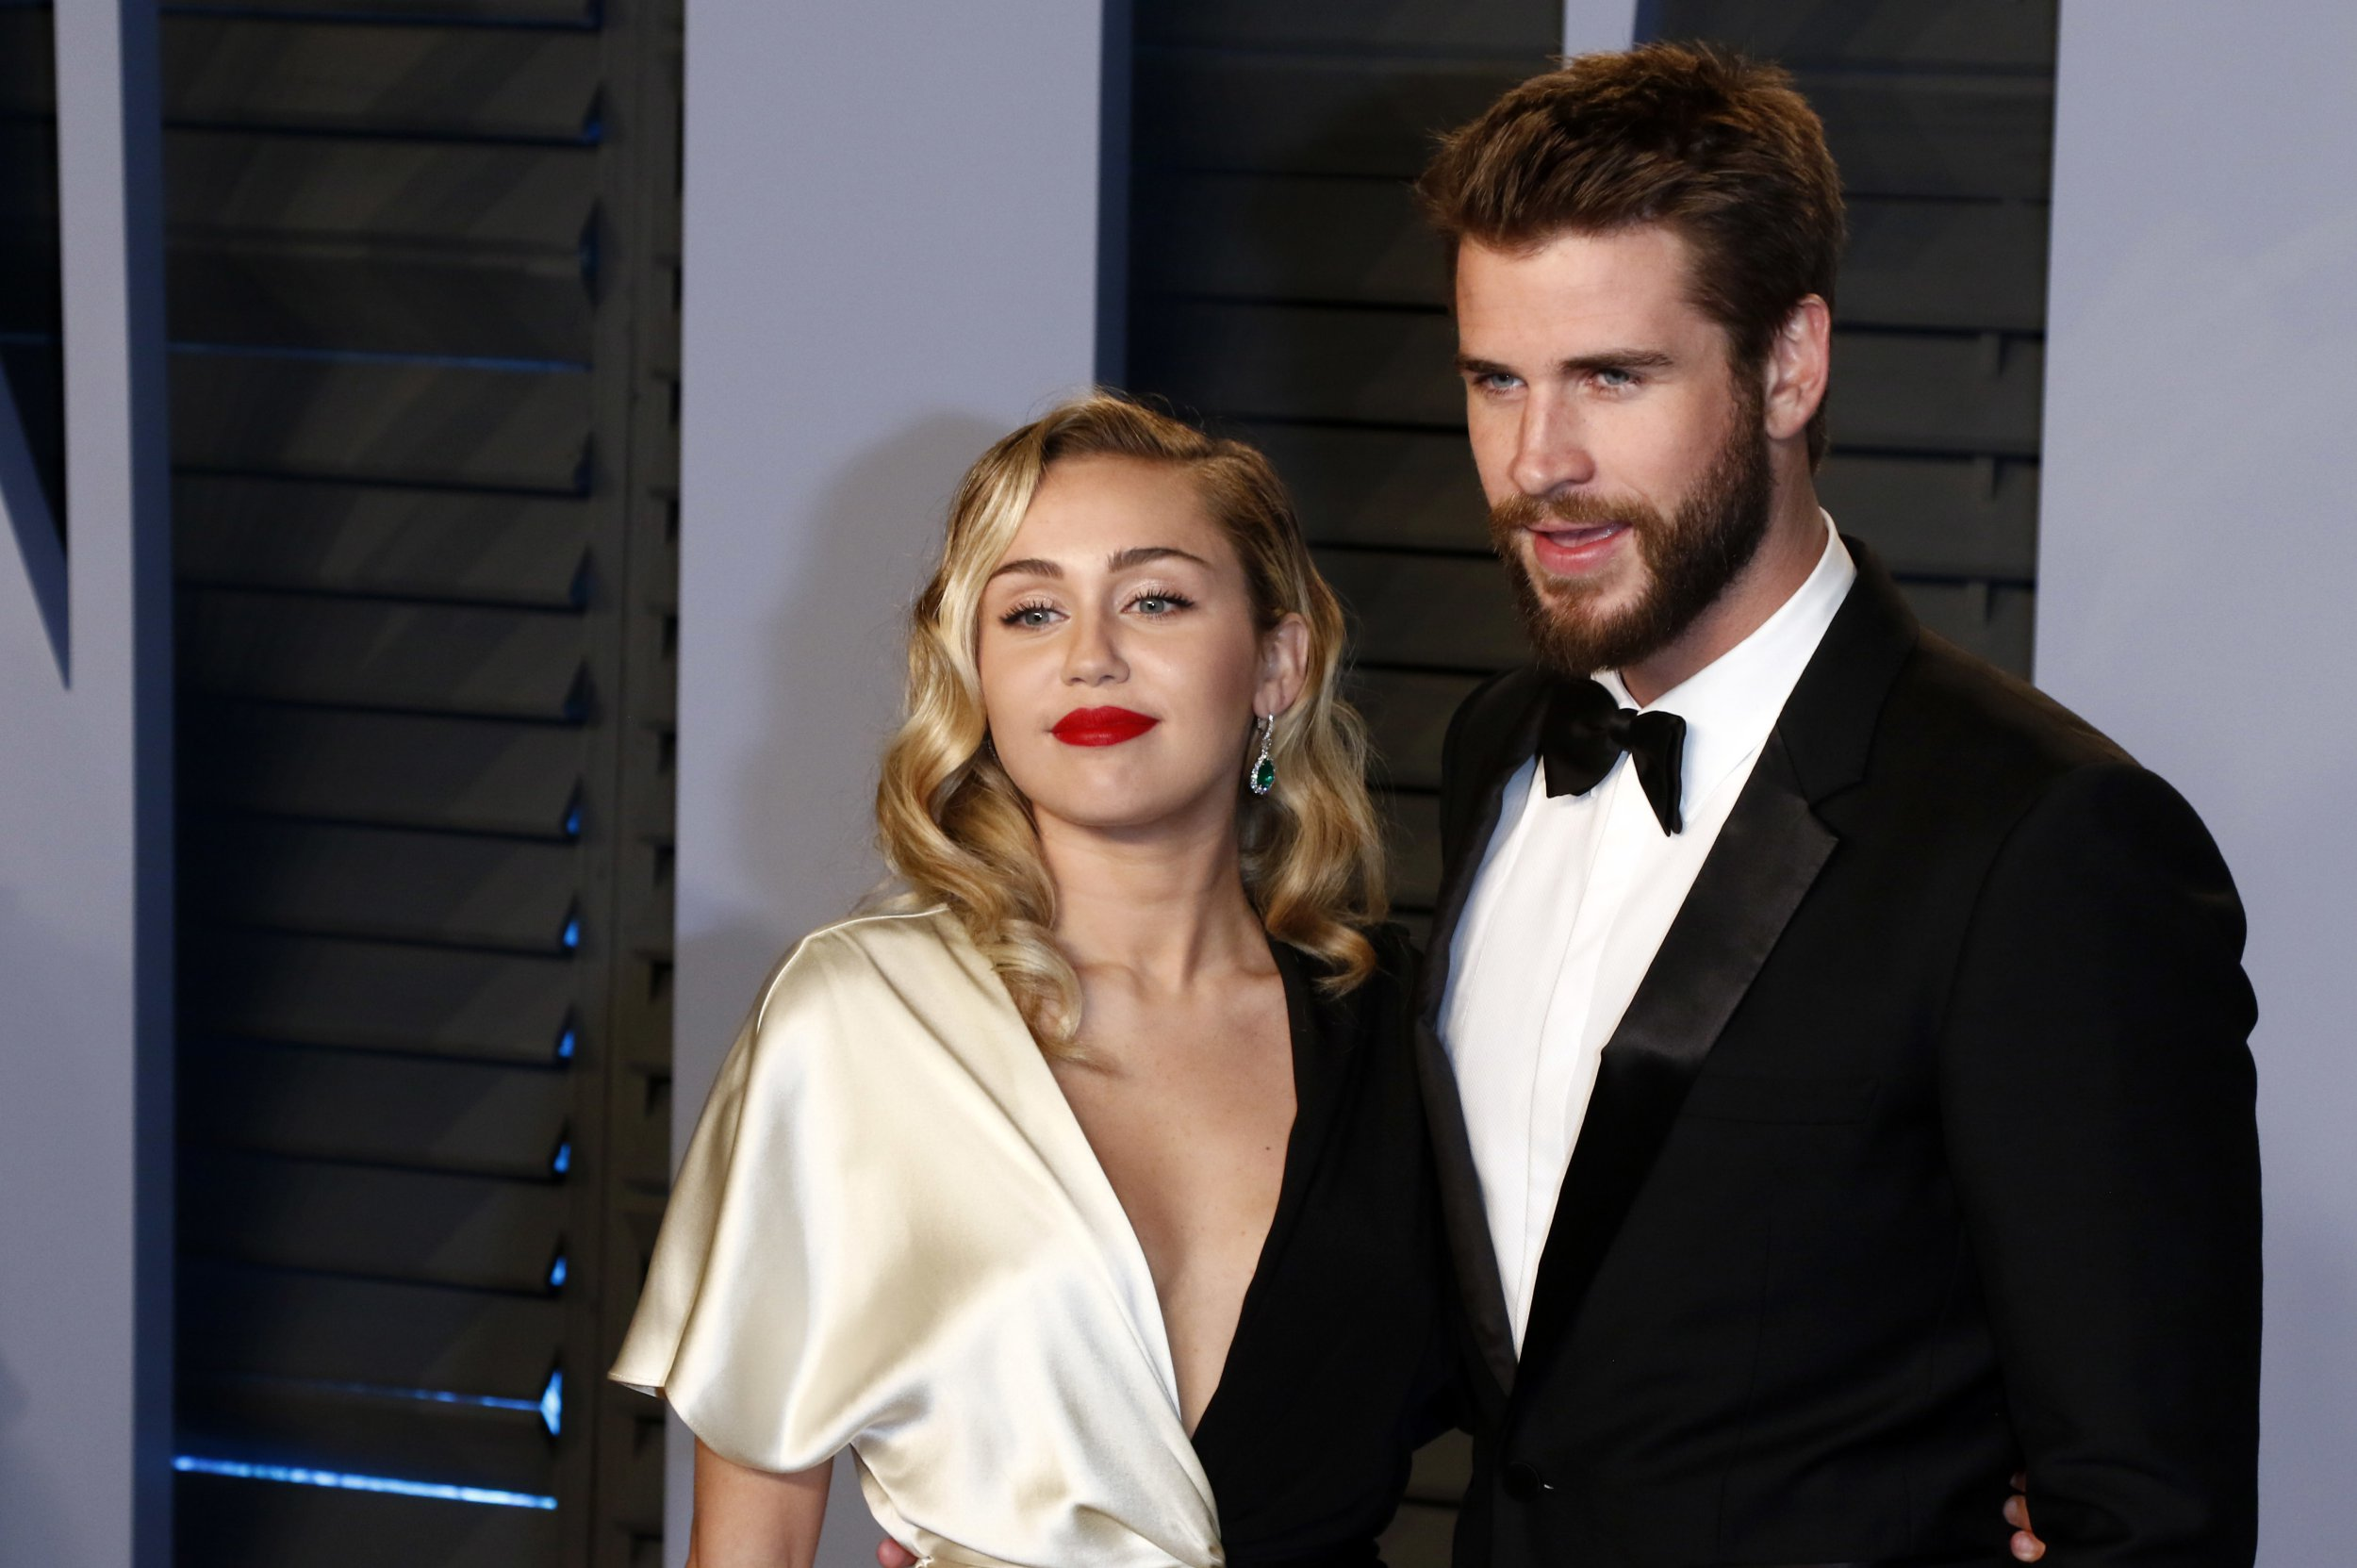 Miley Cyrus shares new photos from her wedding day in a Valentine's Day tribute to Liam Hemsworth